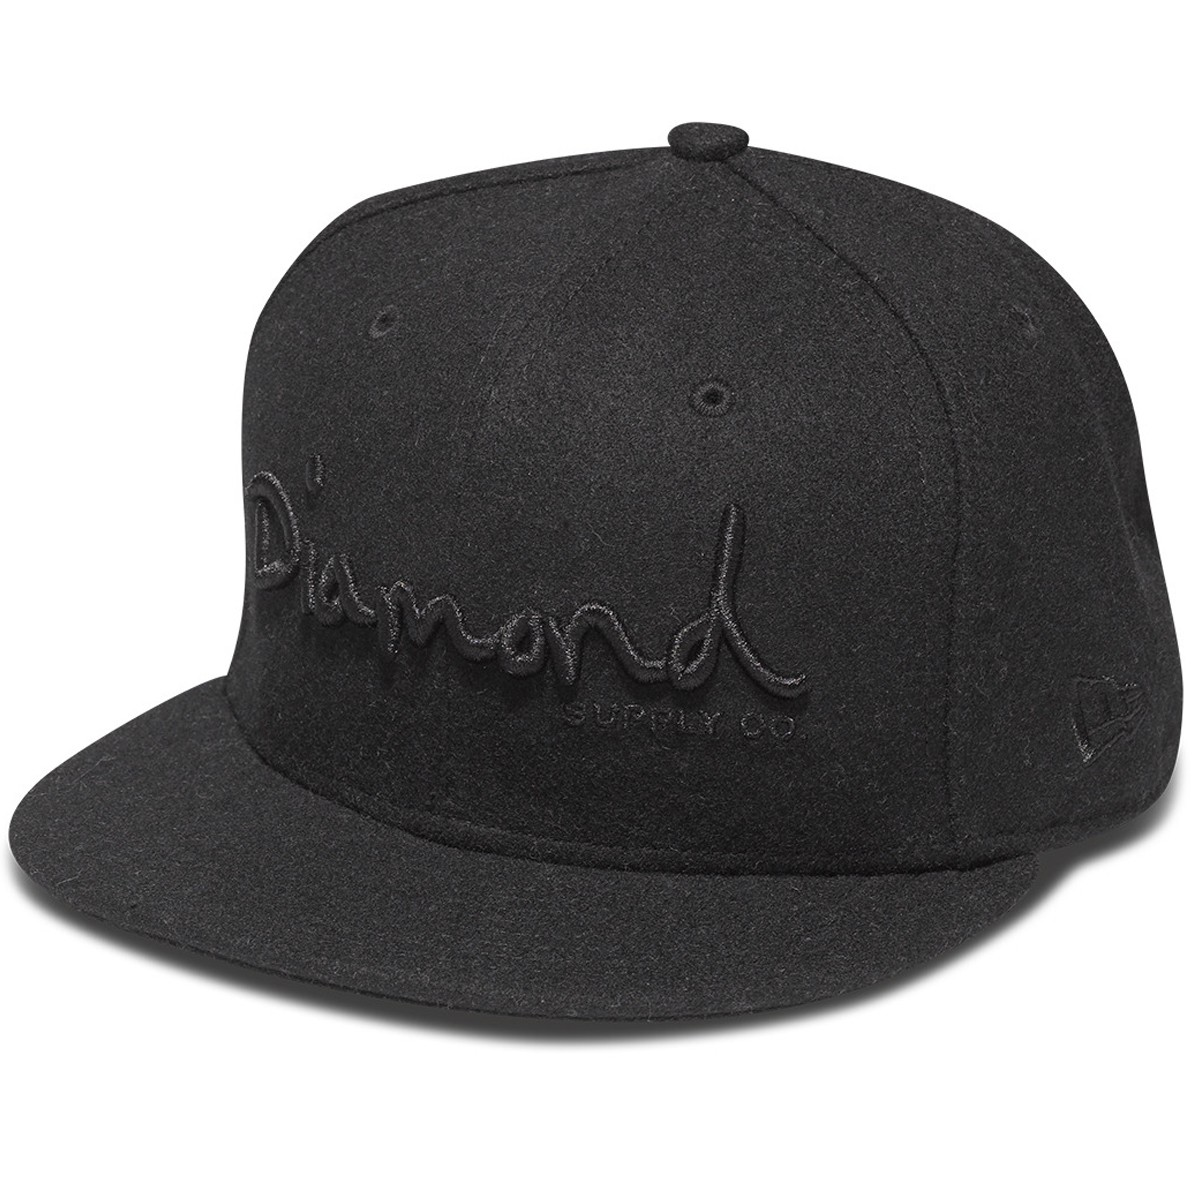 Diamond Supply Co. OG Script Fitted Hat - Black